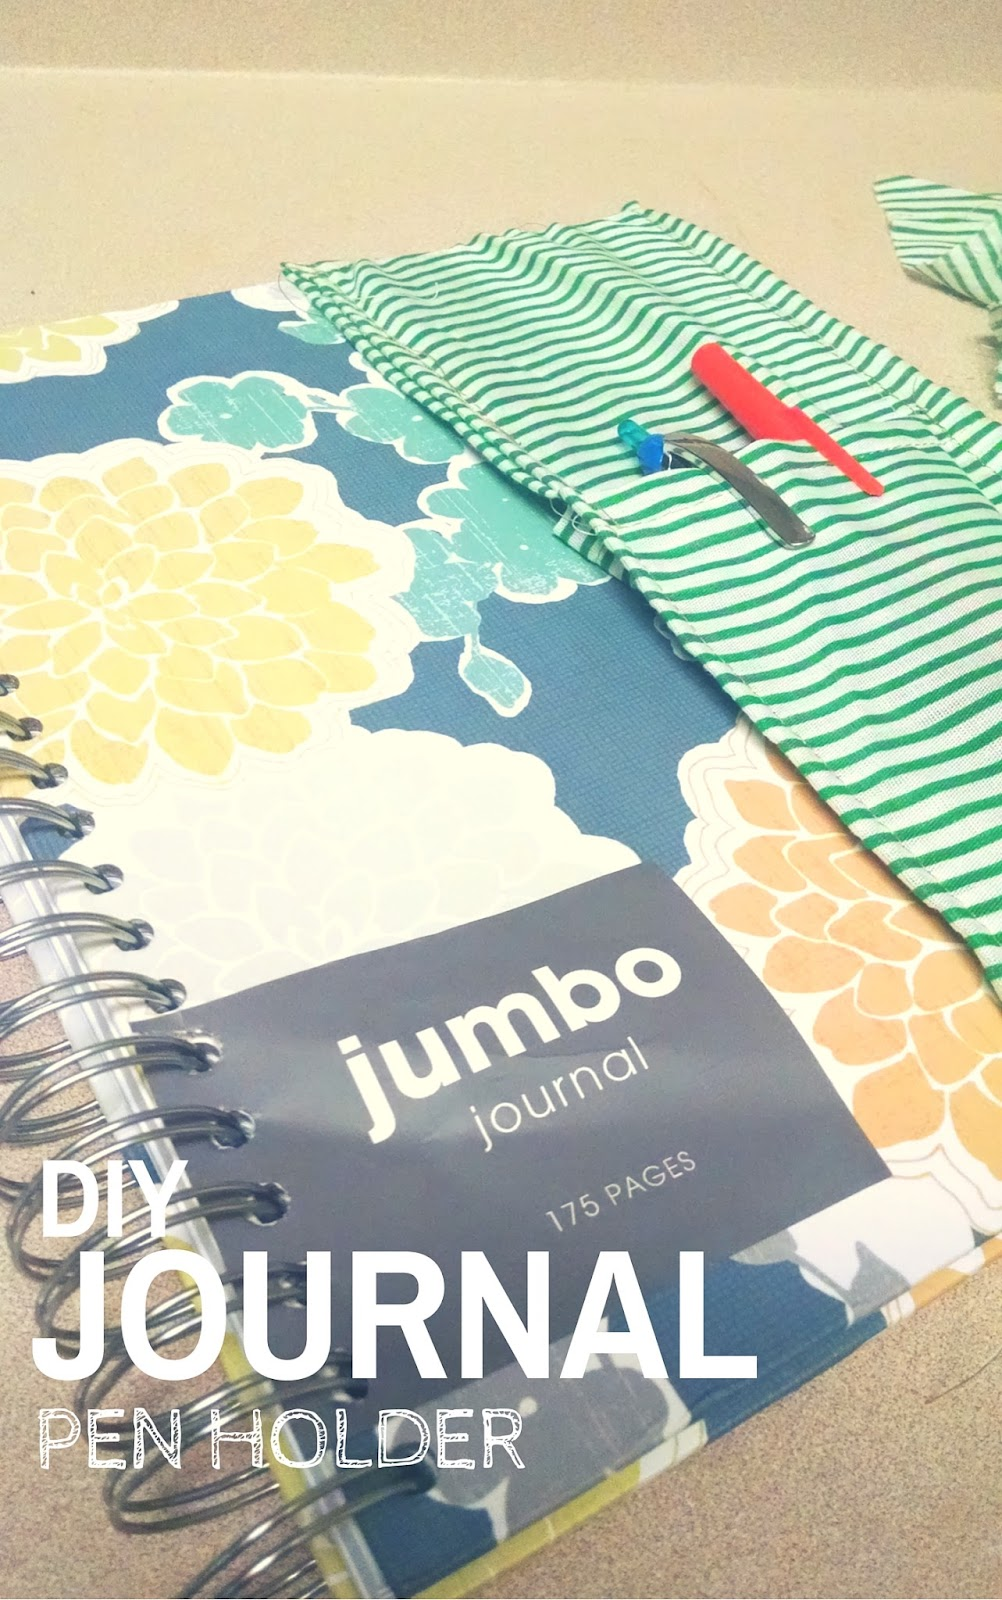 diy journal pen holder